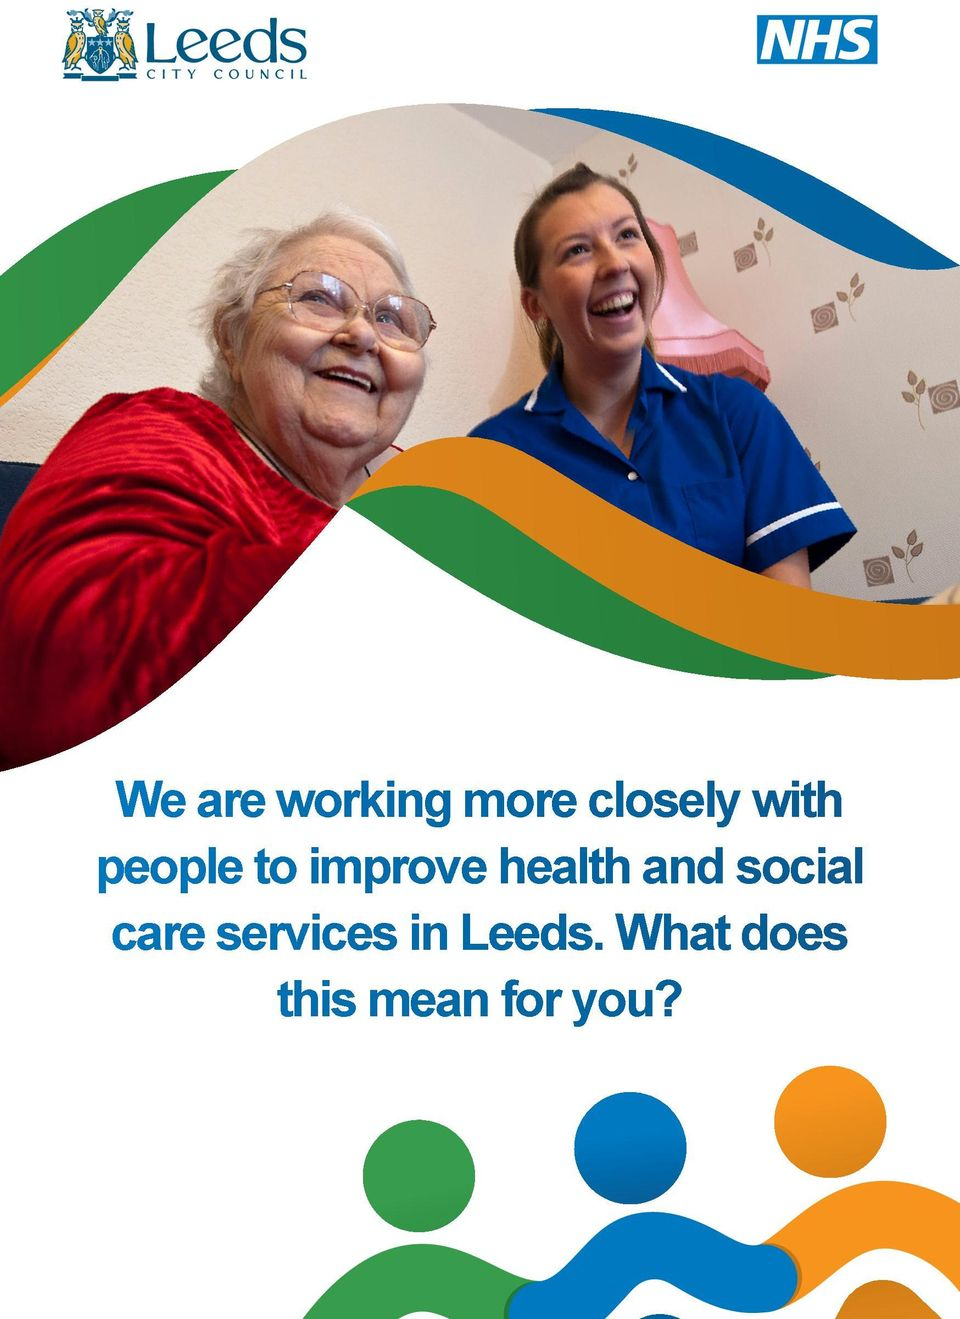 and social care services in